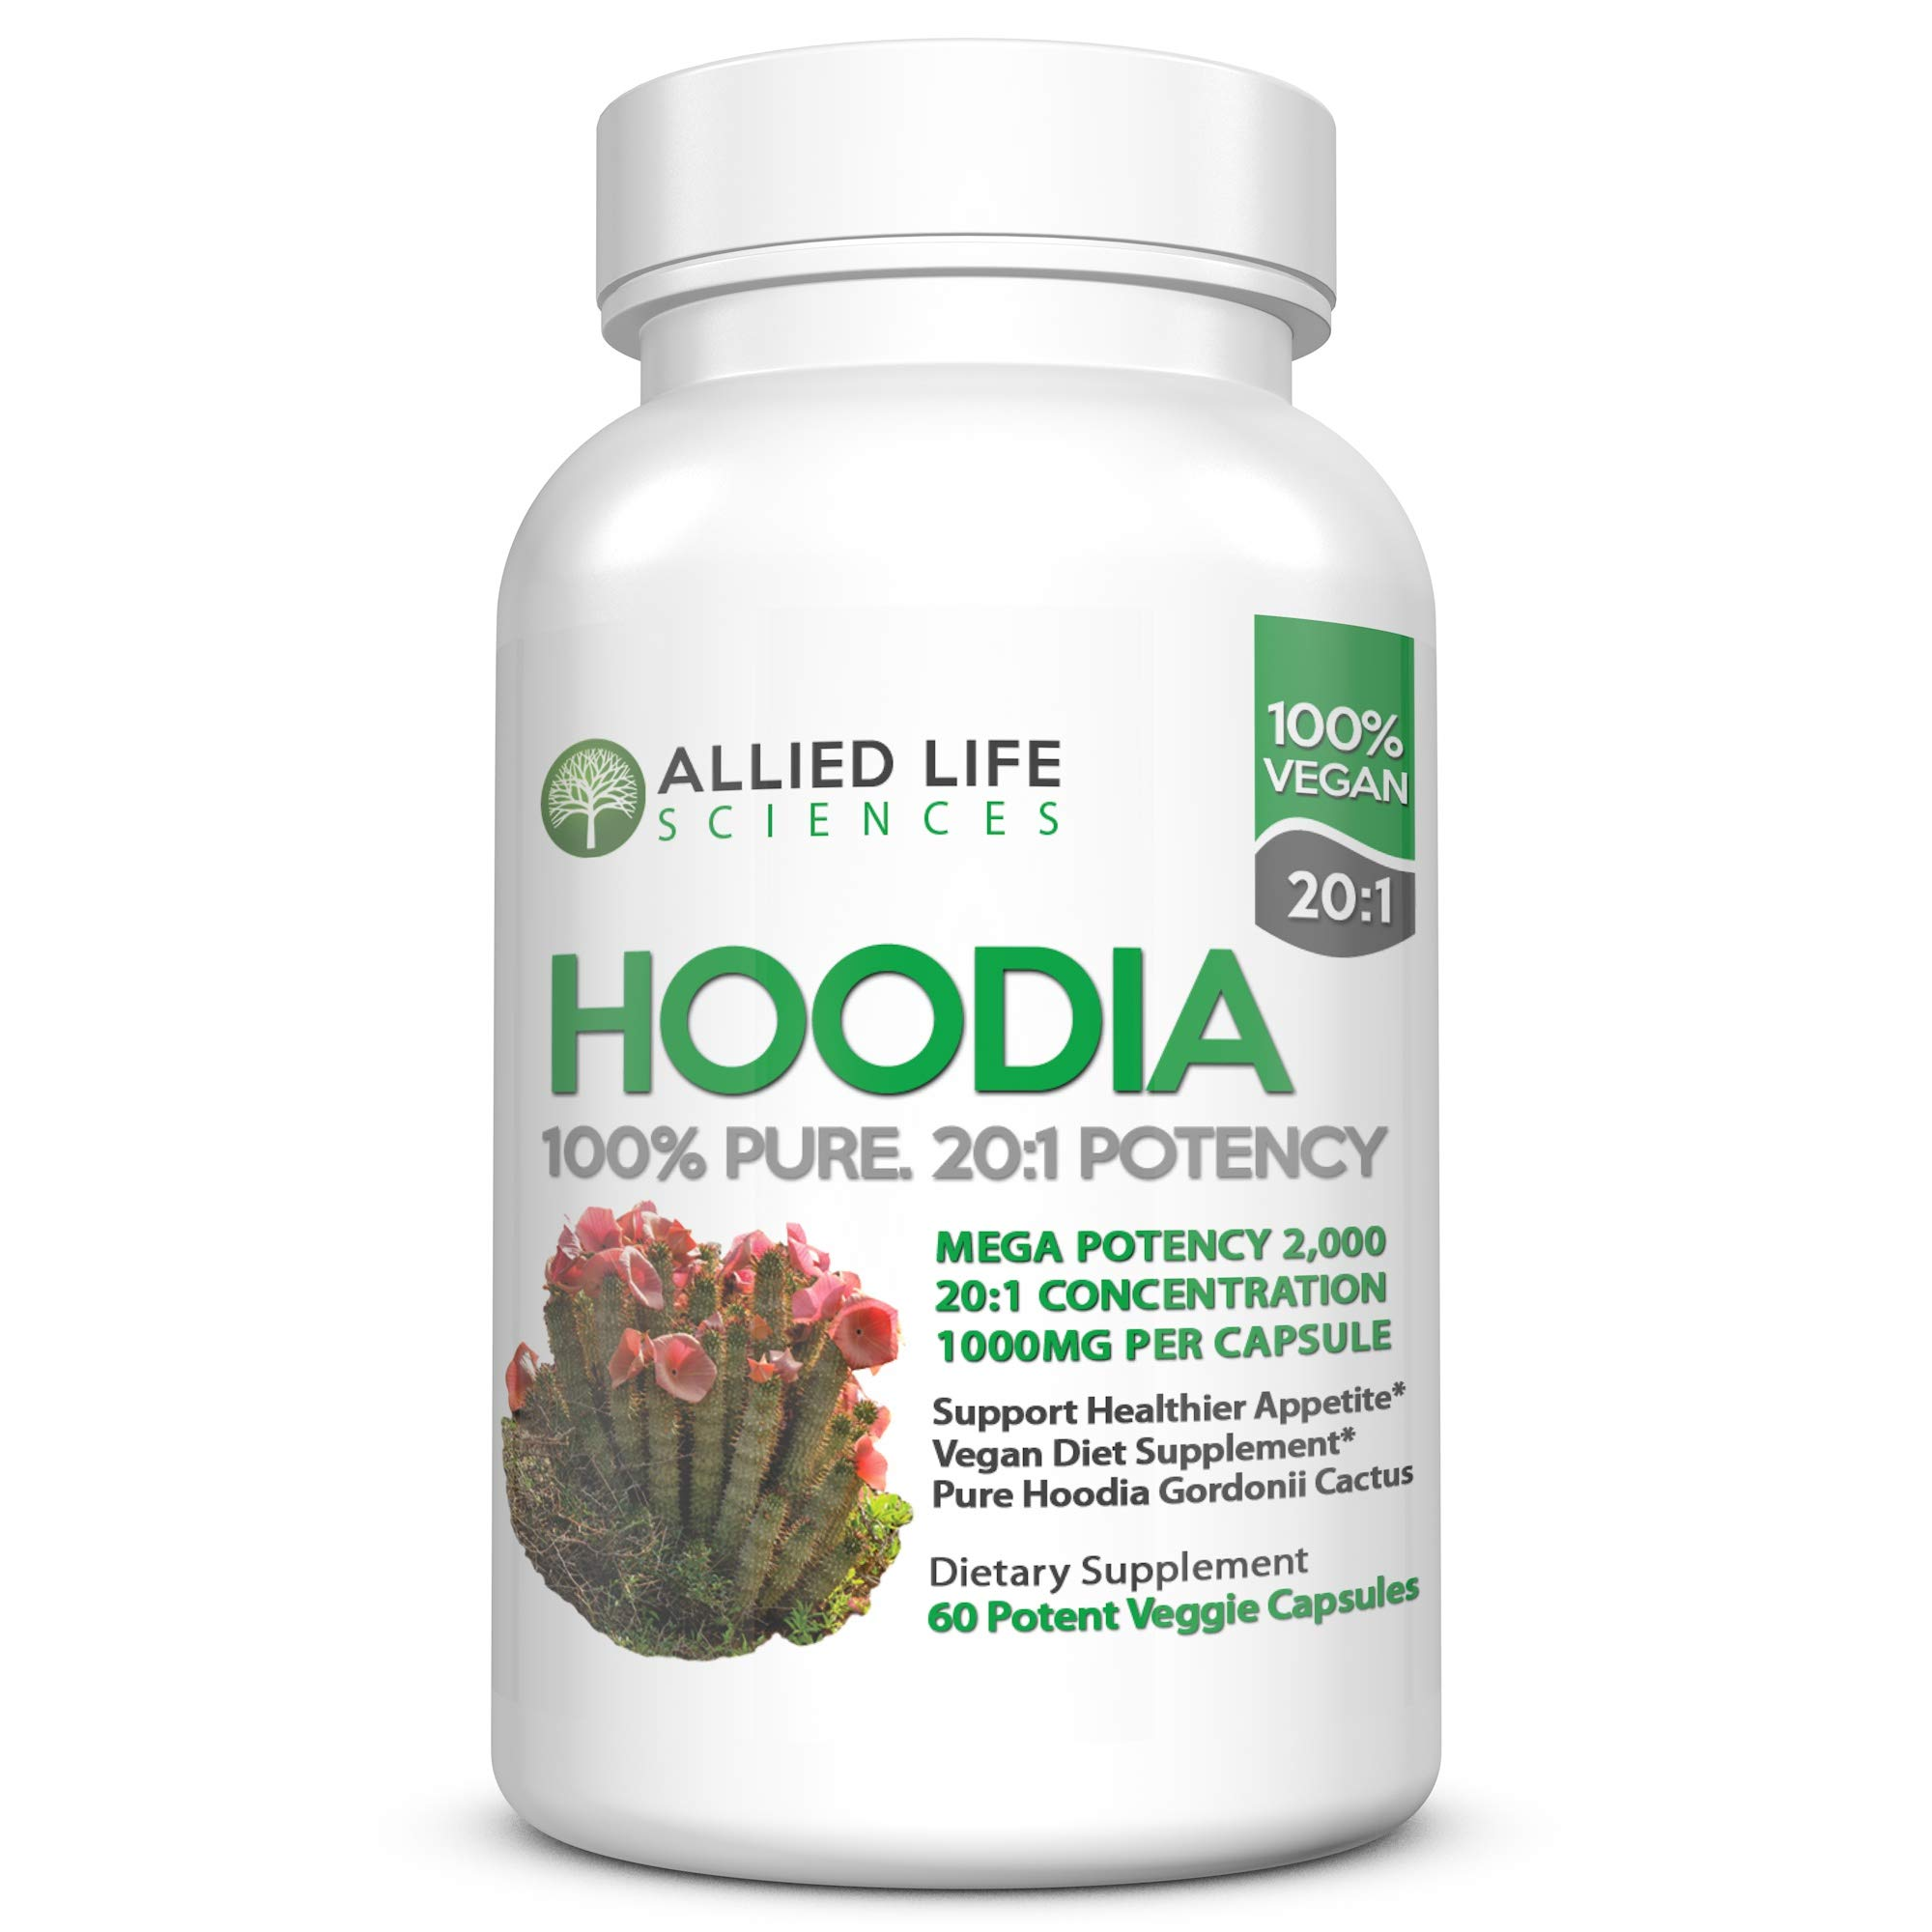 Hoodia Gordonii - Natural Vegan Appetite Suppressant Pills. 20:1 Potency is 20X Stronger Than Raw Hoodia. Stimulant Free Unlike Most Diet Pills & Weight Loss Products by Allied Life